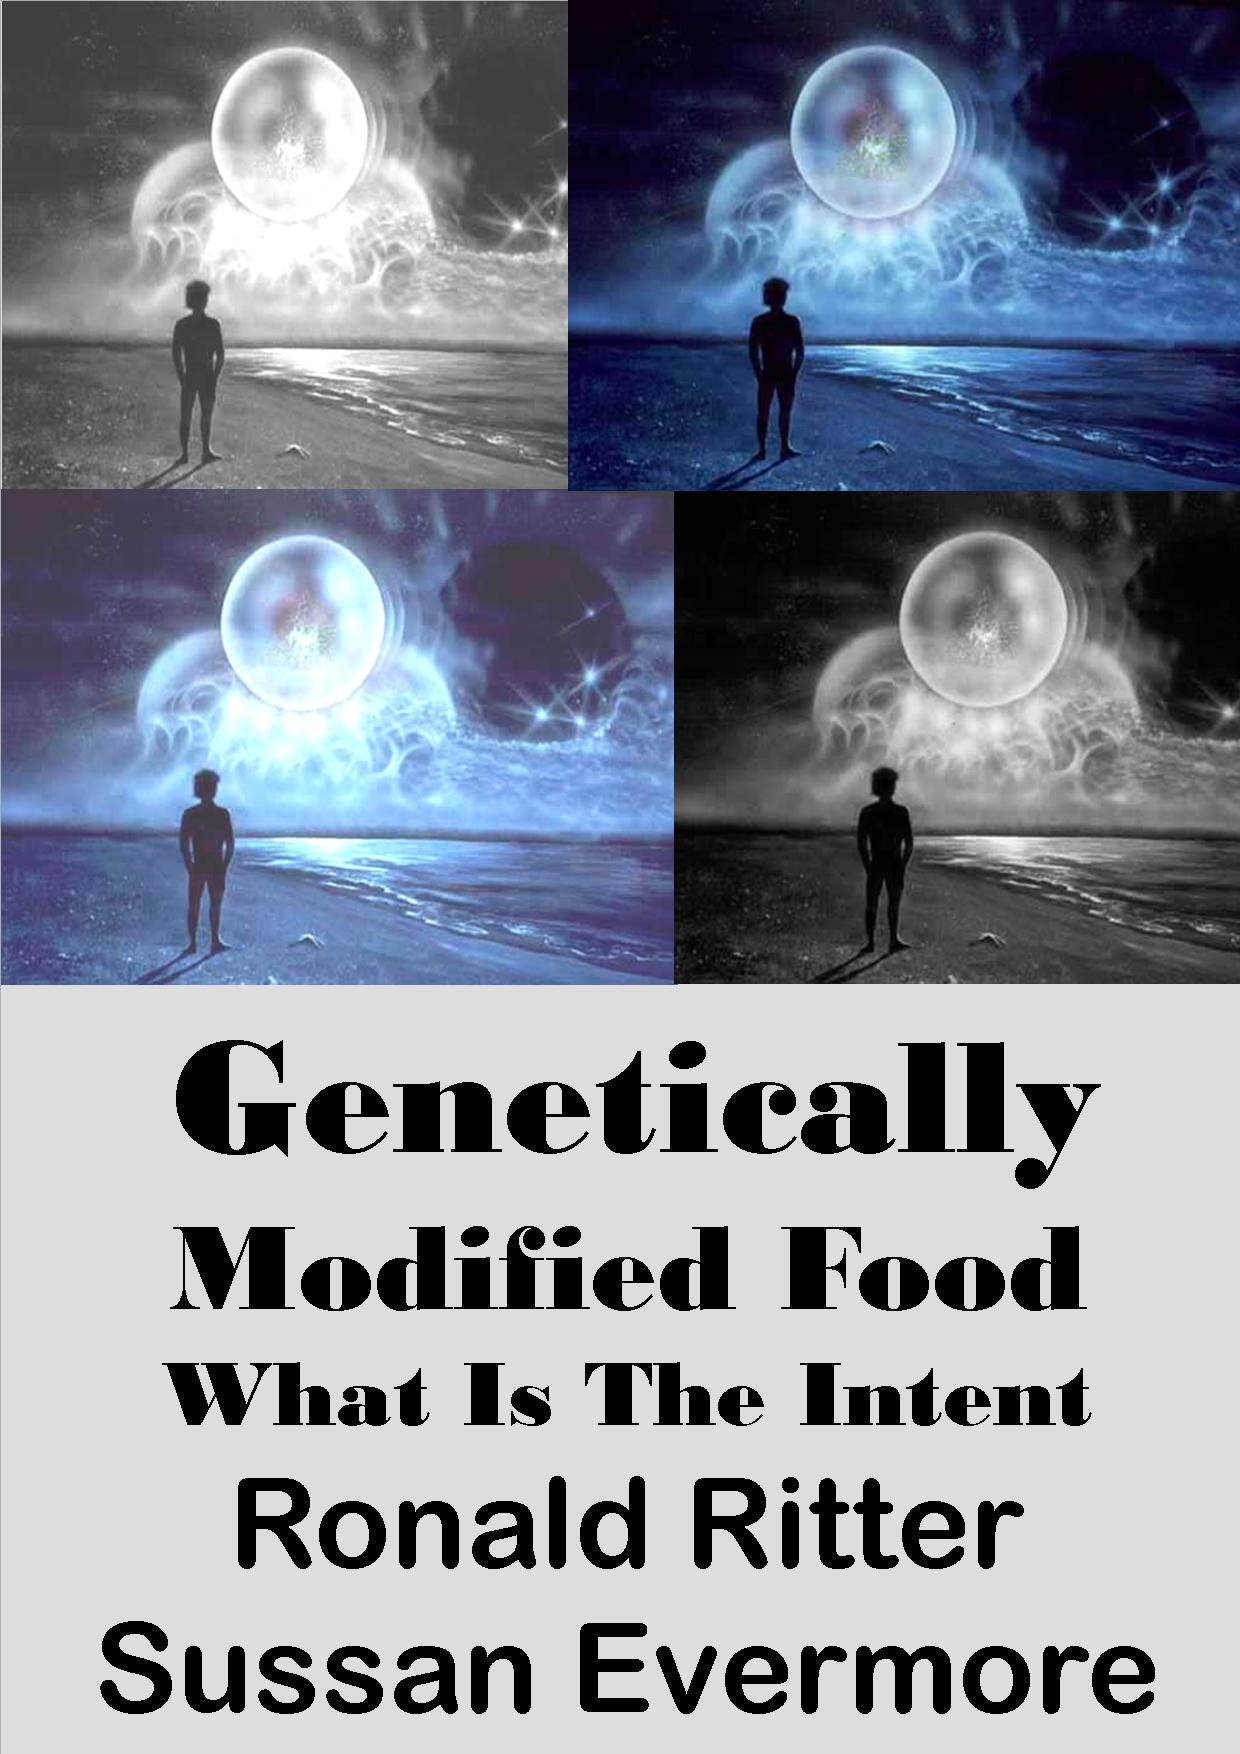 Genetically Modified Food , What is The Intent By: Ronald Ritter,Sussan Evermore